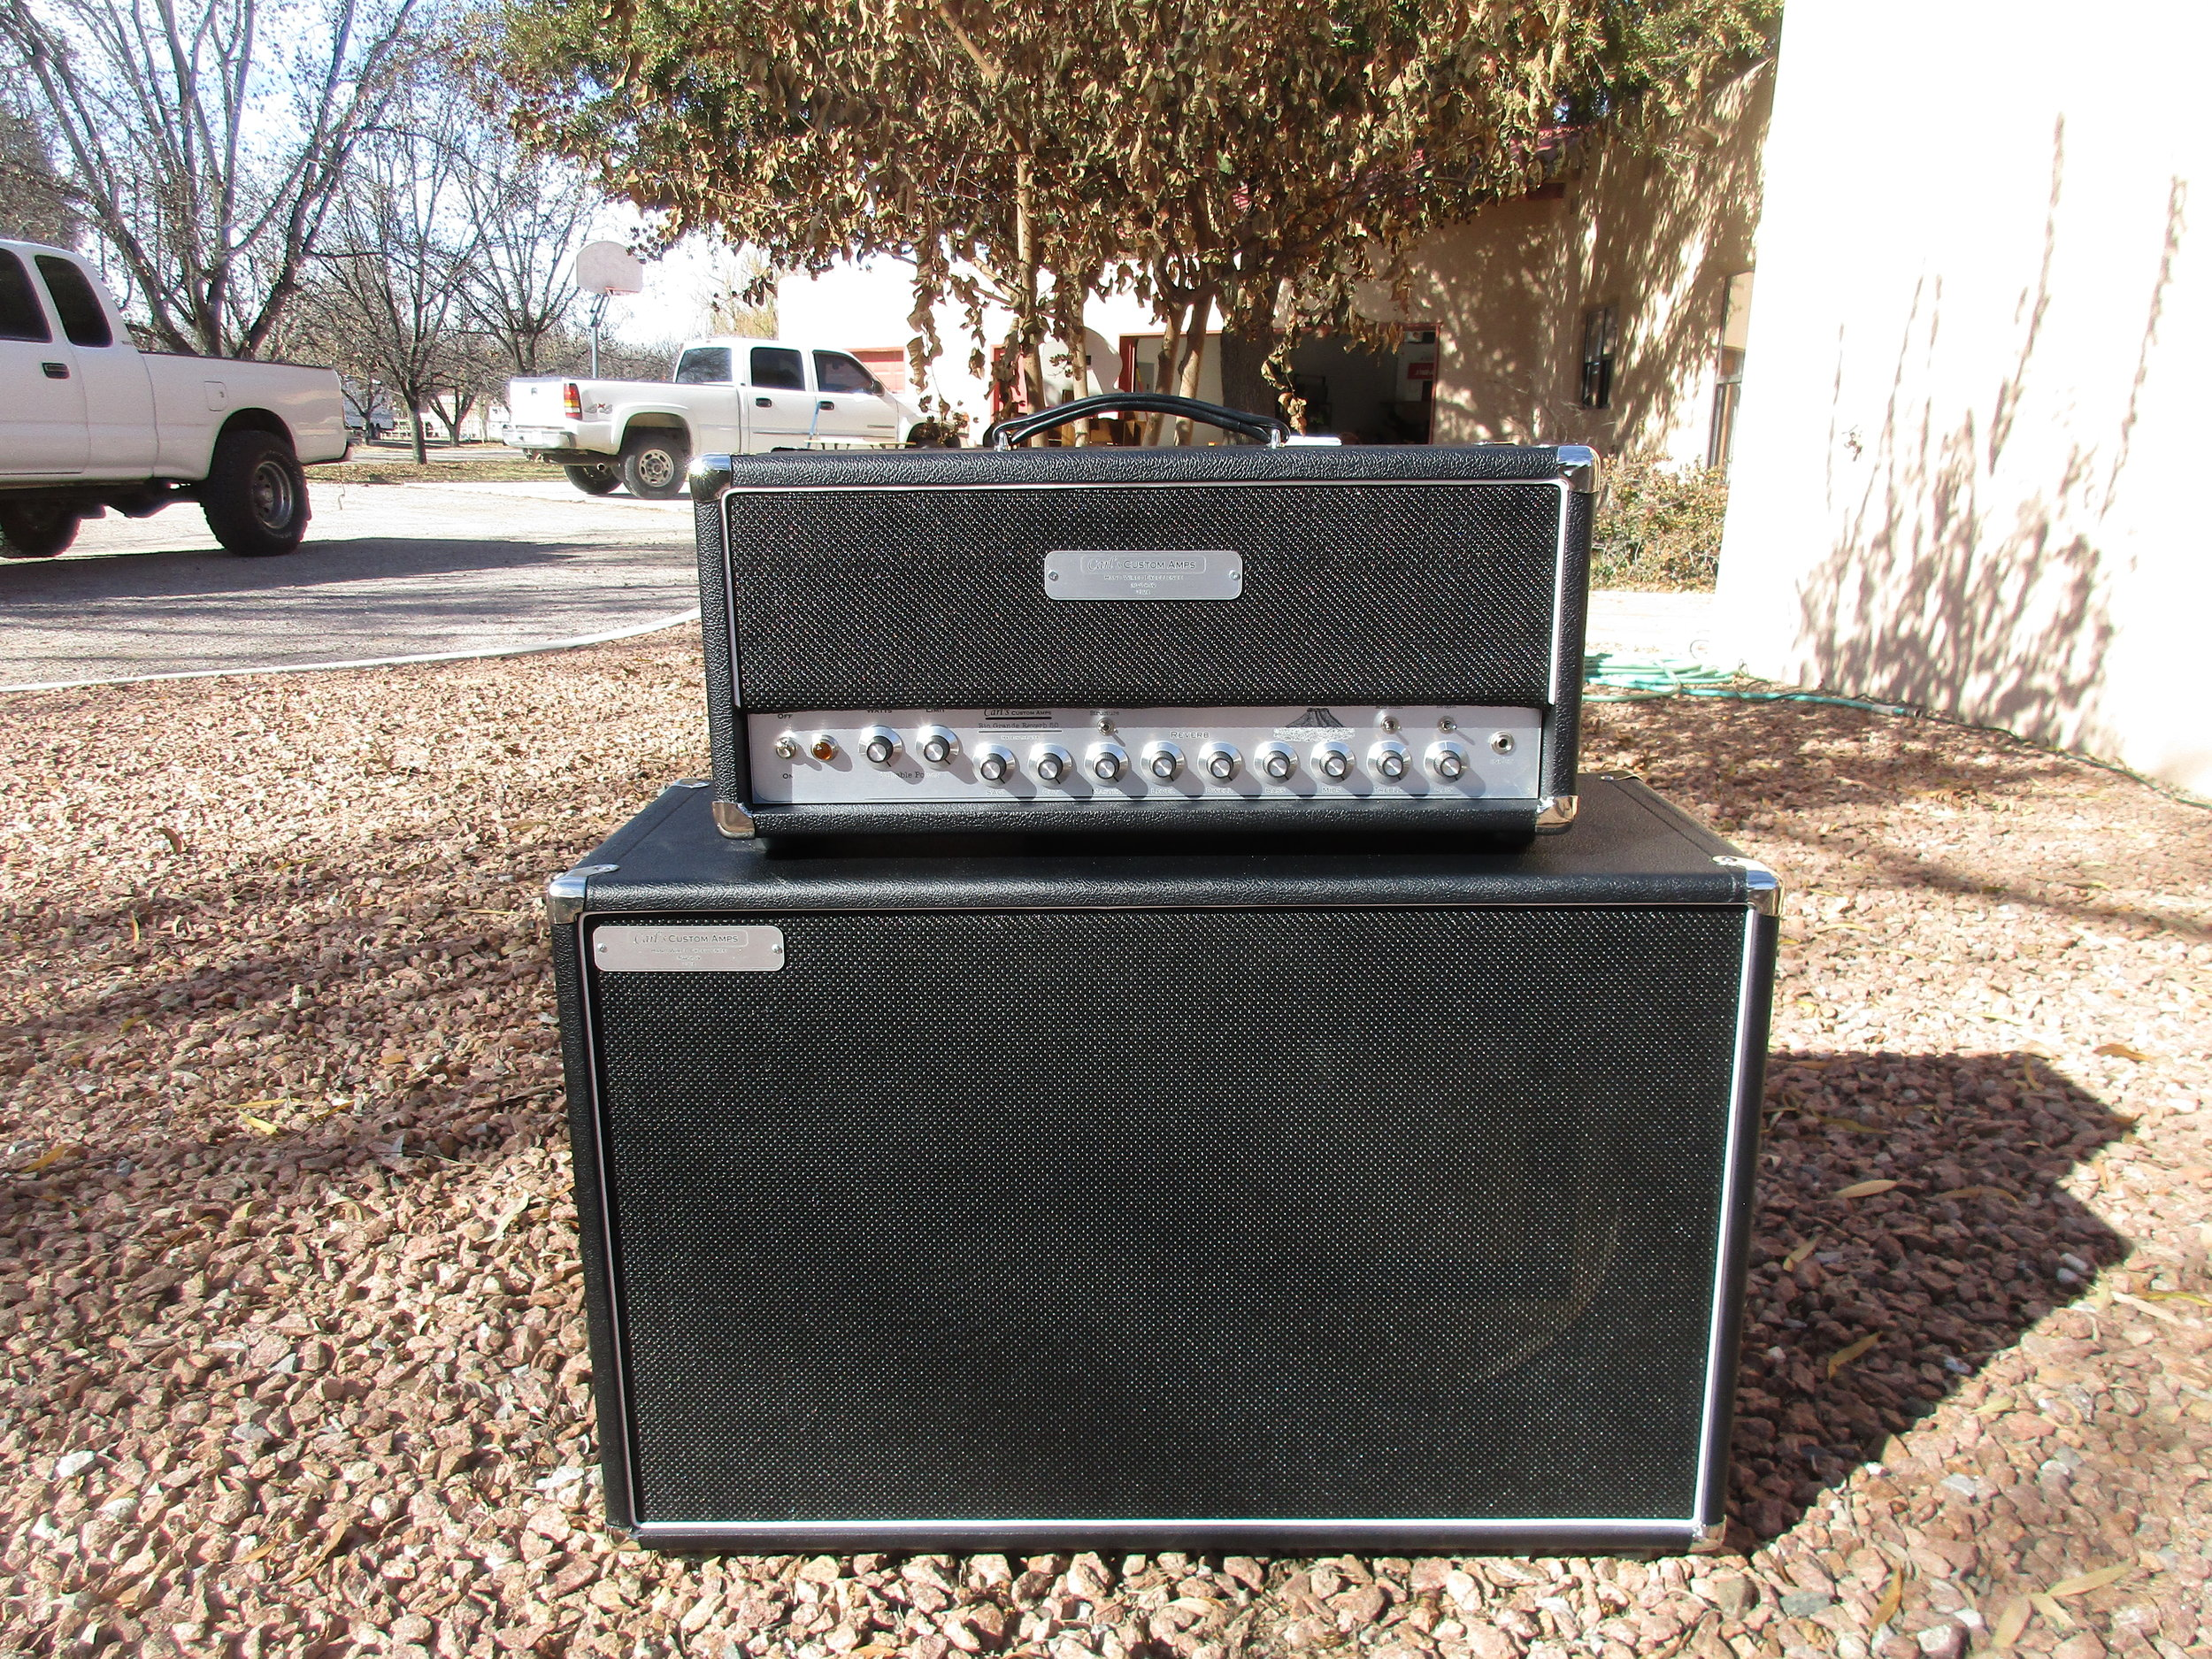 This one cool custom build! It's Dumble/ Two Rock inspired amp made to do big smooth cleans and be a pedal platform. However it's far more than clone. It got Variable Power so that it can go from a full 50W to 1/10W for cranked tone at any volume. It can use most Octal power tubes for additional tonal textures. It has SAG control that allow you to dial in the feel of the amp and a bunch of voicing switches (like most Dumbles) but includes one of my own devising to allow to get more sparkling Fender sound than can be had stock. There are lots of sounds in there! The cabinet is a detuned cab with single Weber Michigan 12 which is similar to the EVs Dumble often shipped his amps with.  The customer wrote:  Carl I just want to say this is the most incredible amp I have ever had the privilege of playing . Thanks for taking your time with me and hammering out all the details . You went above and beyond . I never imagined a Amp could sound this good —-ERIC